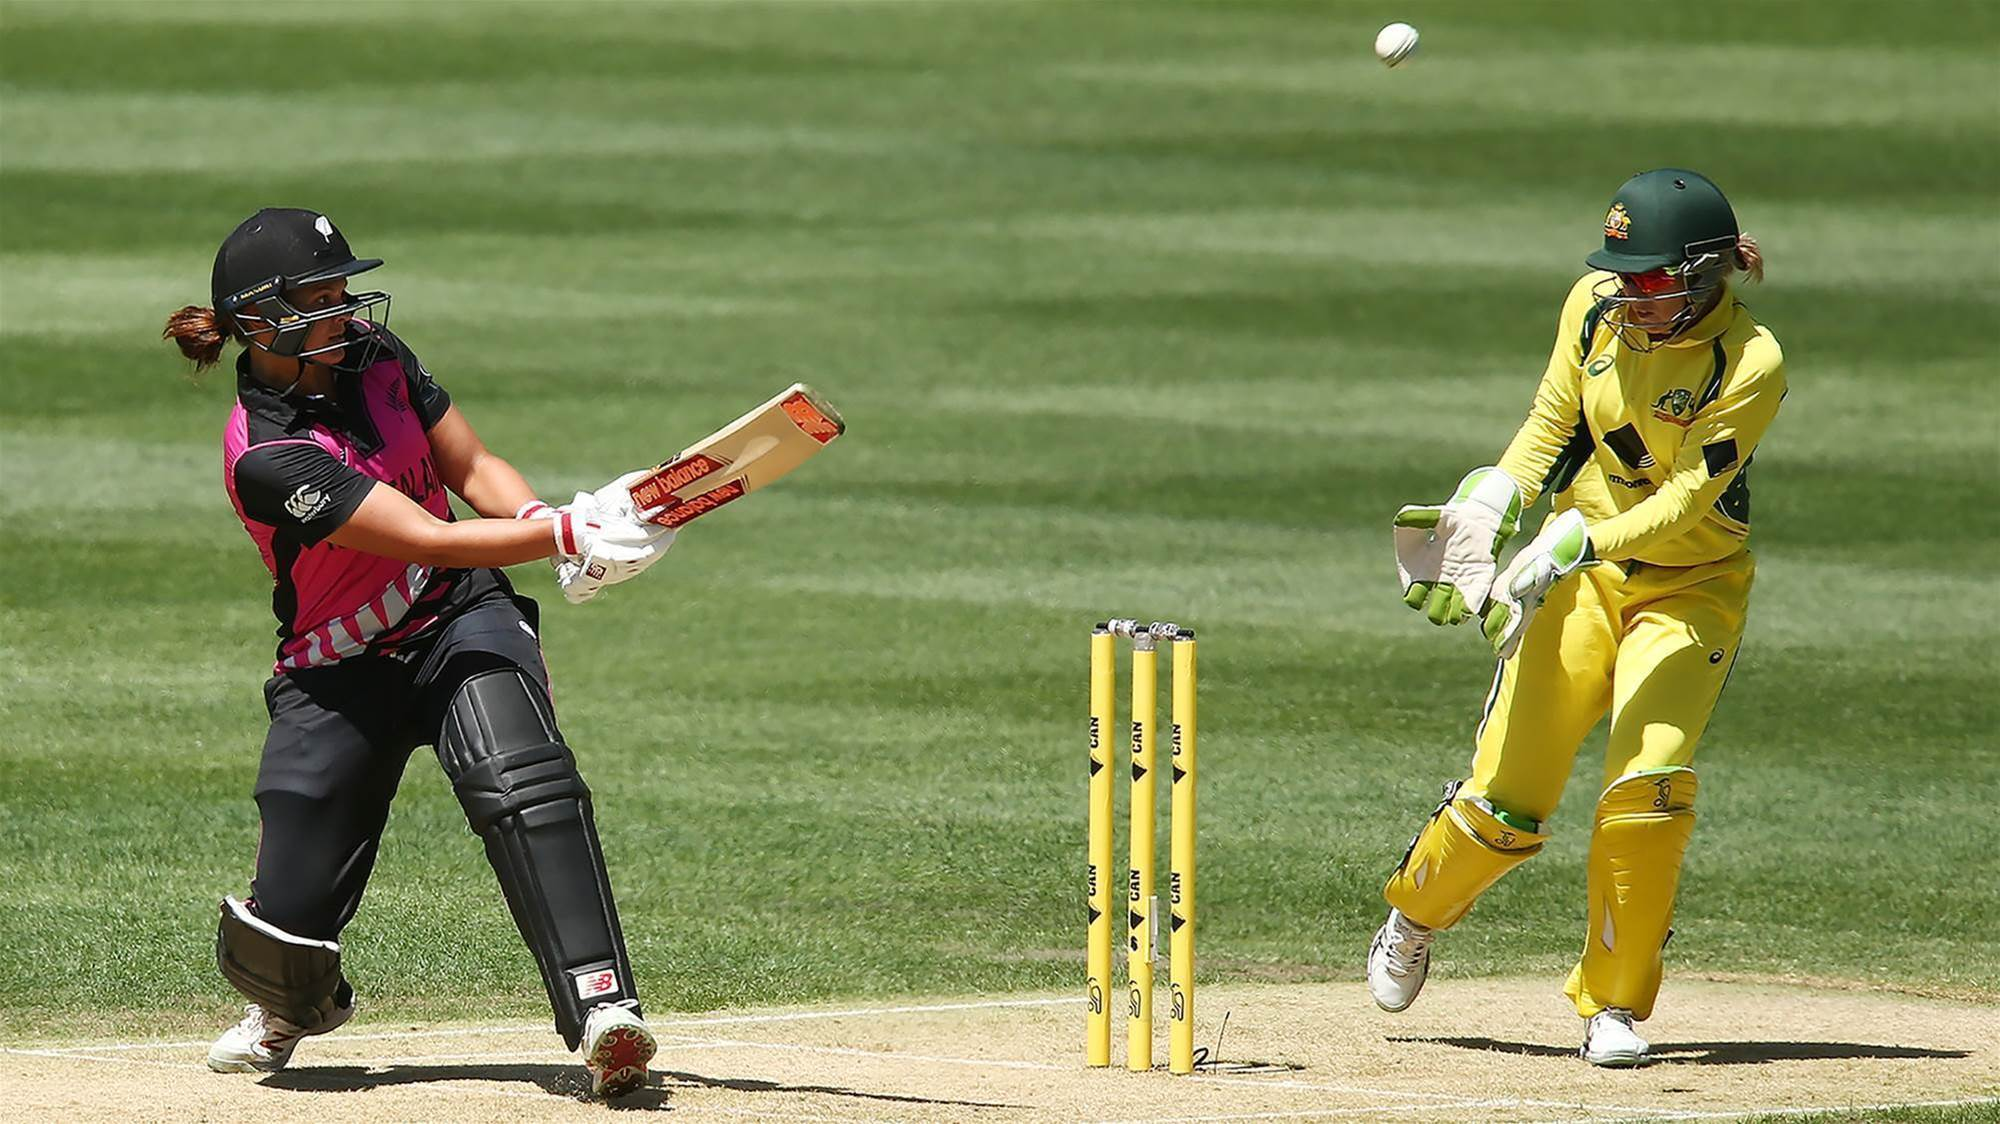 Big summer of cricket for Aussie women